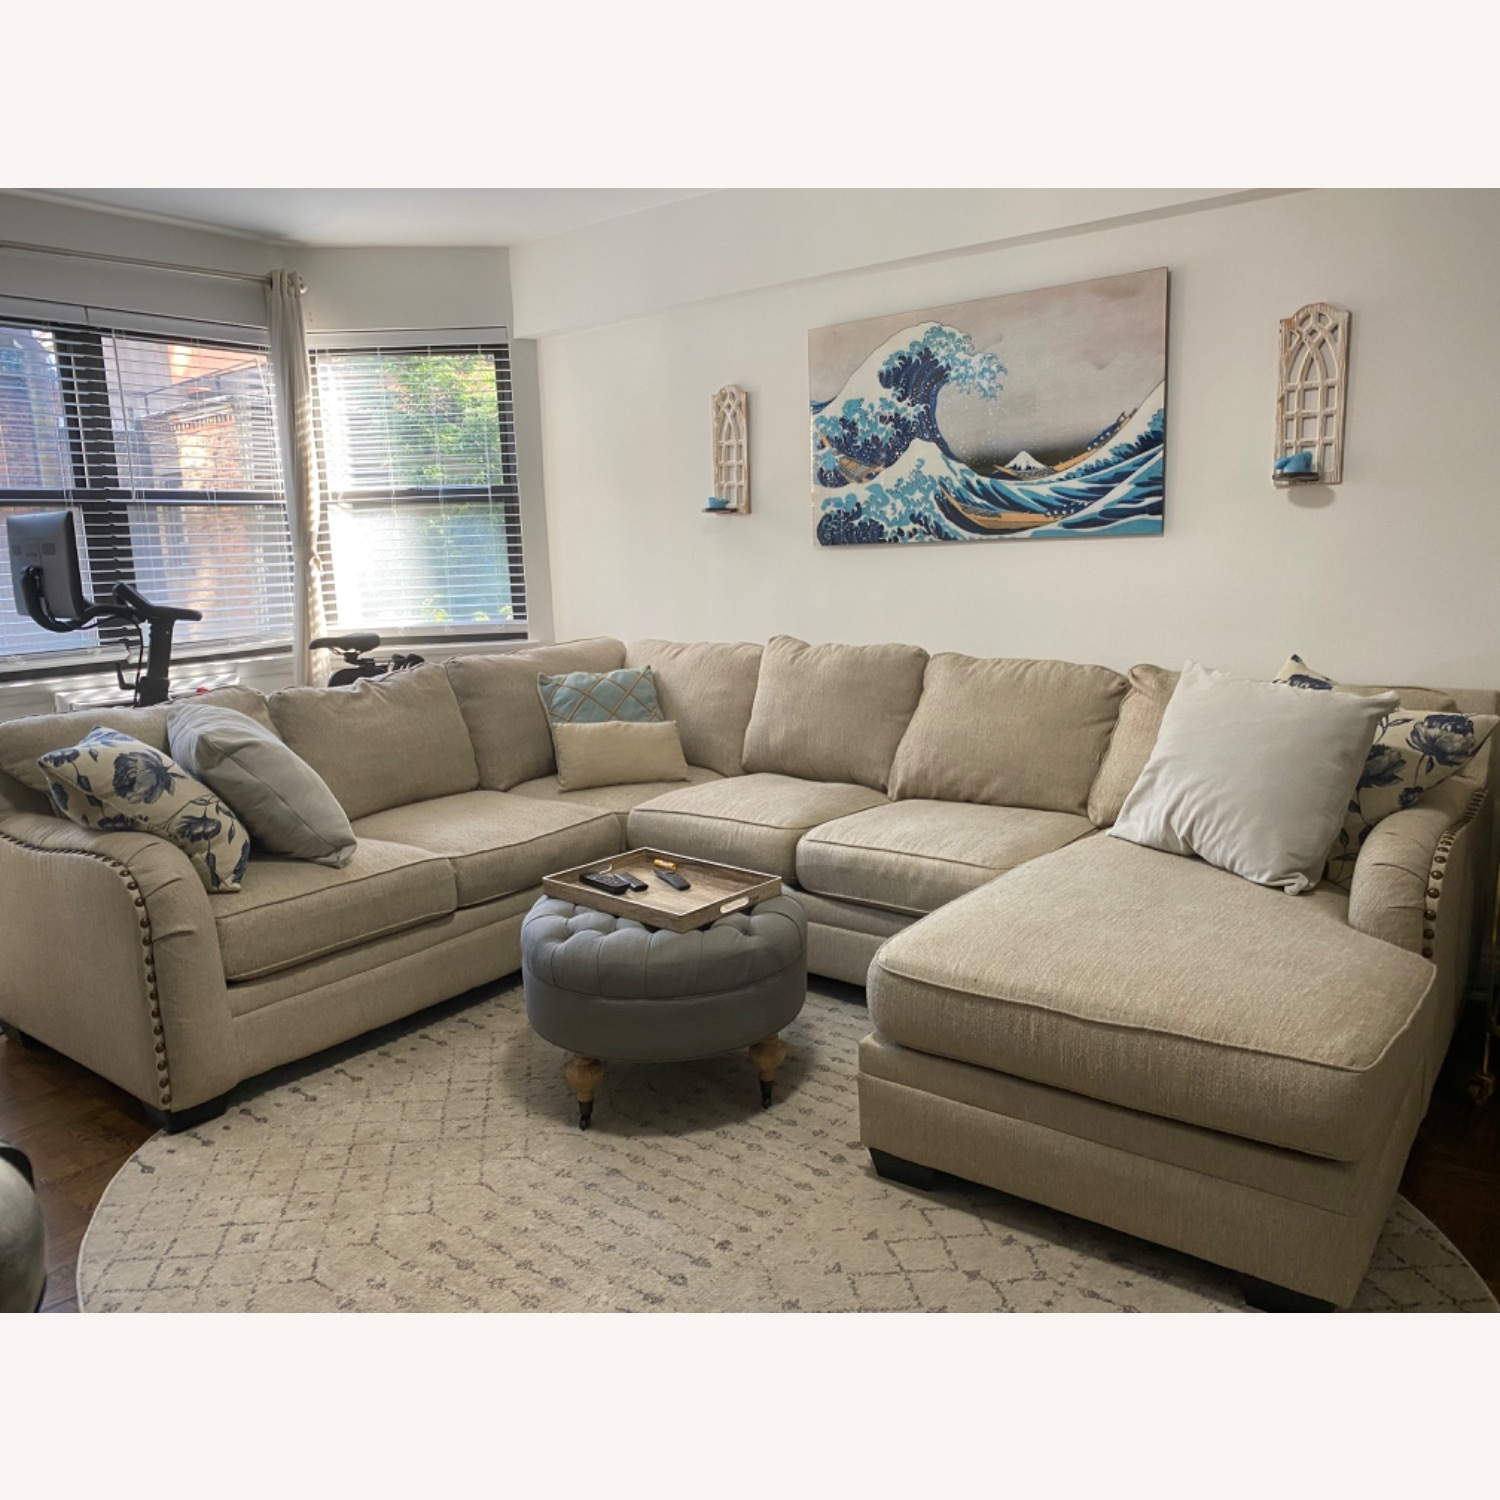 Ashley Home Luxora Beige 4-Piece Sectional Sofa - image-1